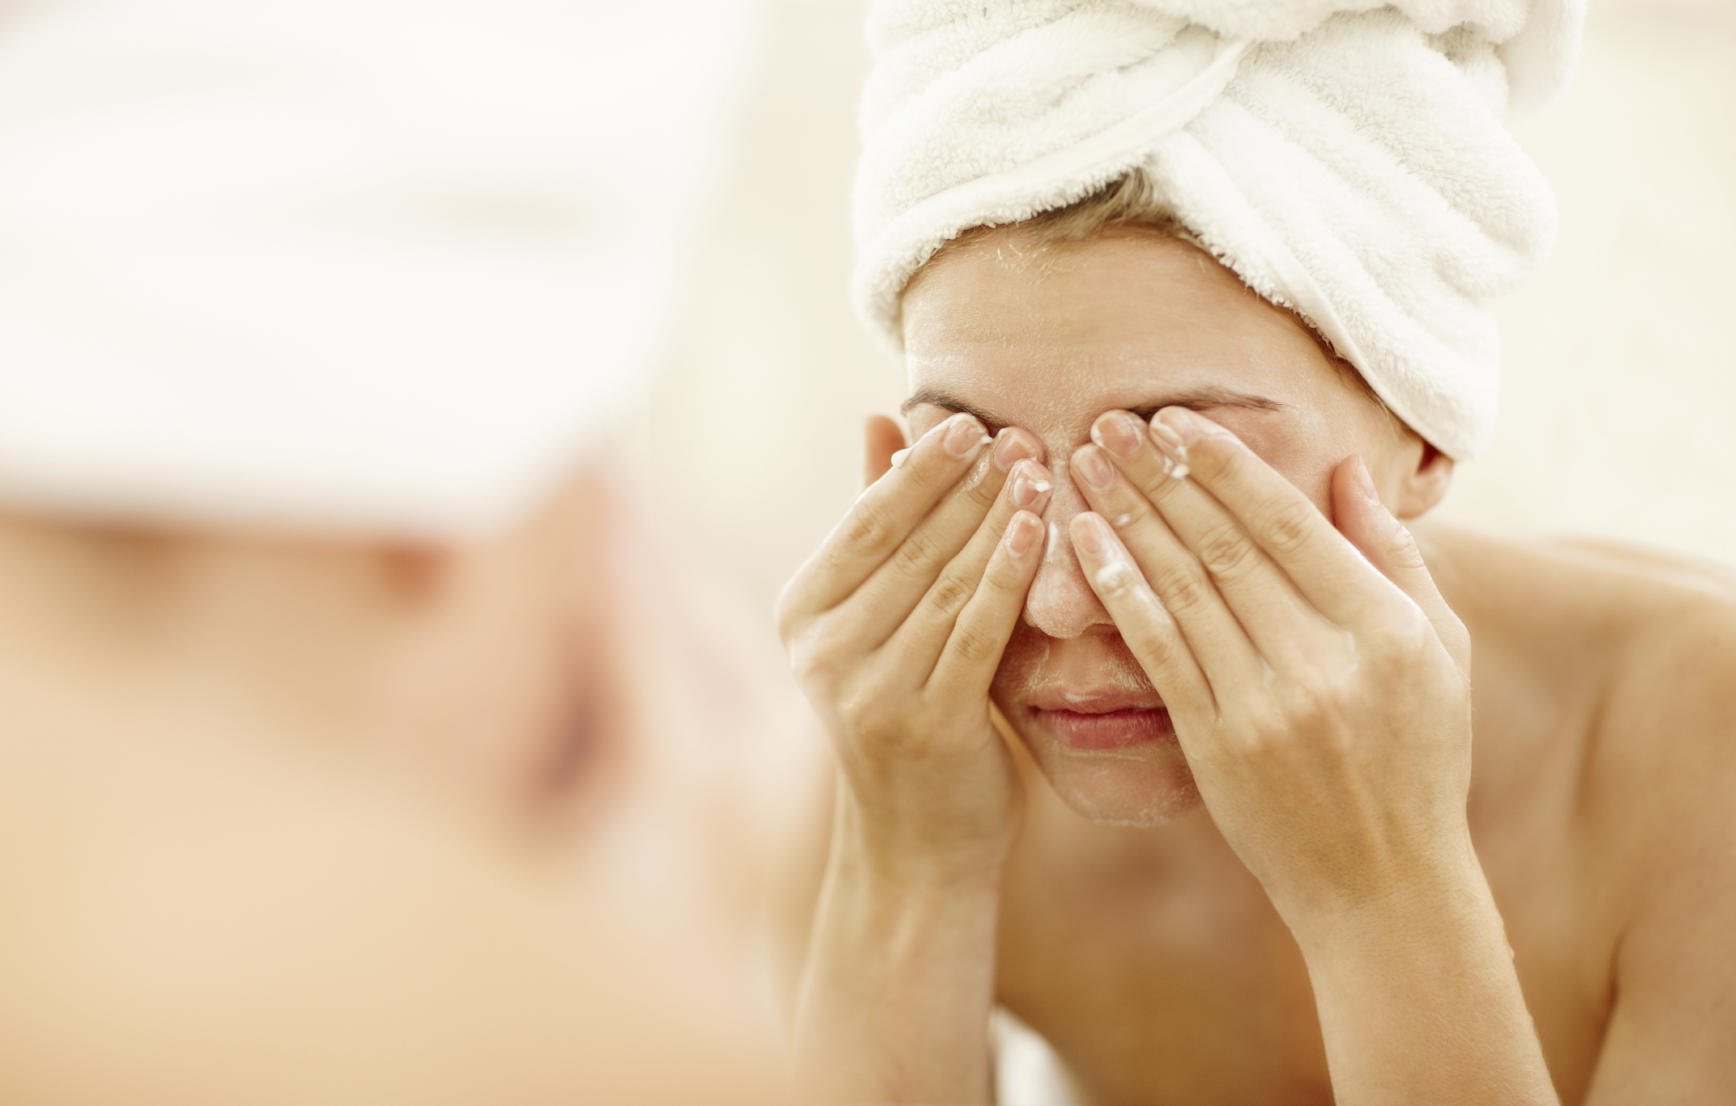 Why You Should Stop Washing Your Face